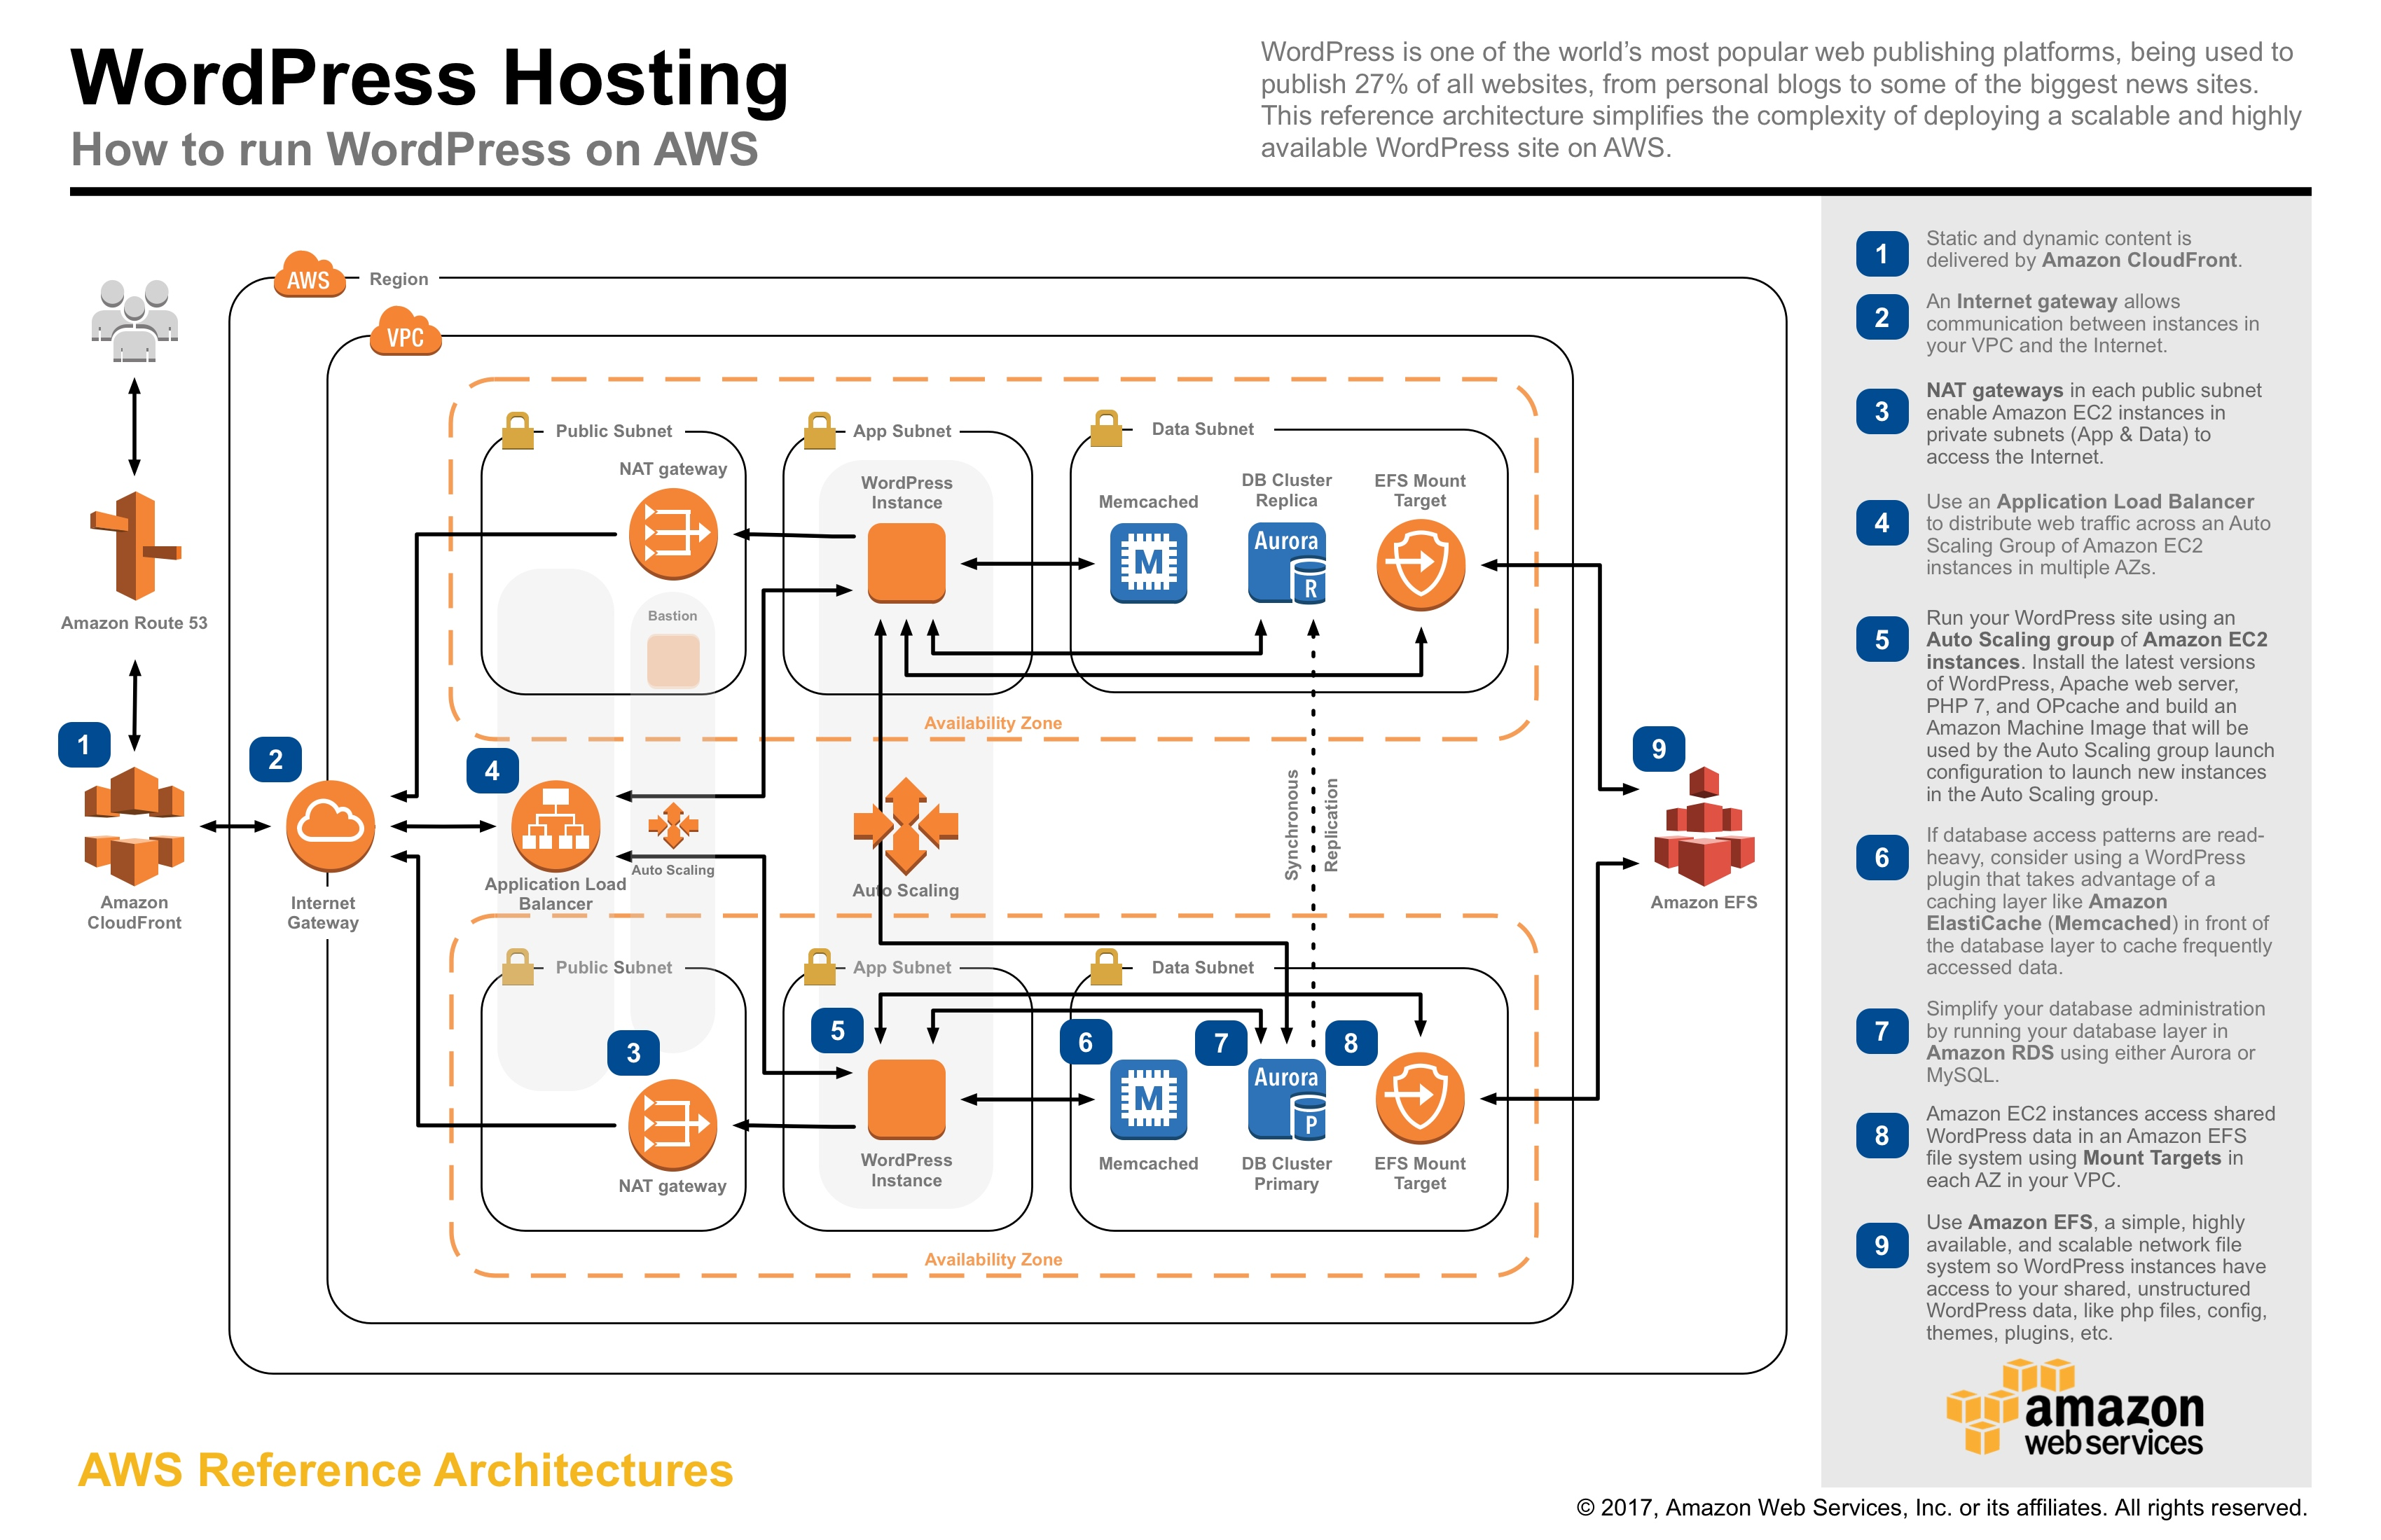 aws-reference-architecture-wordpress